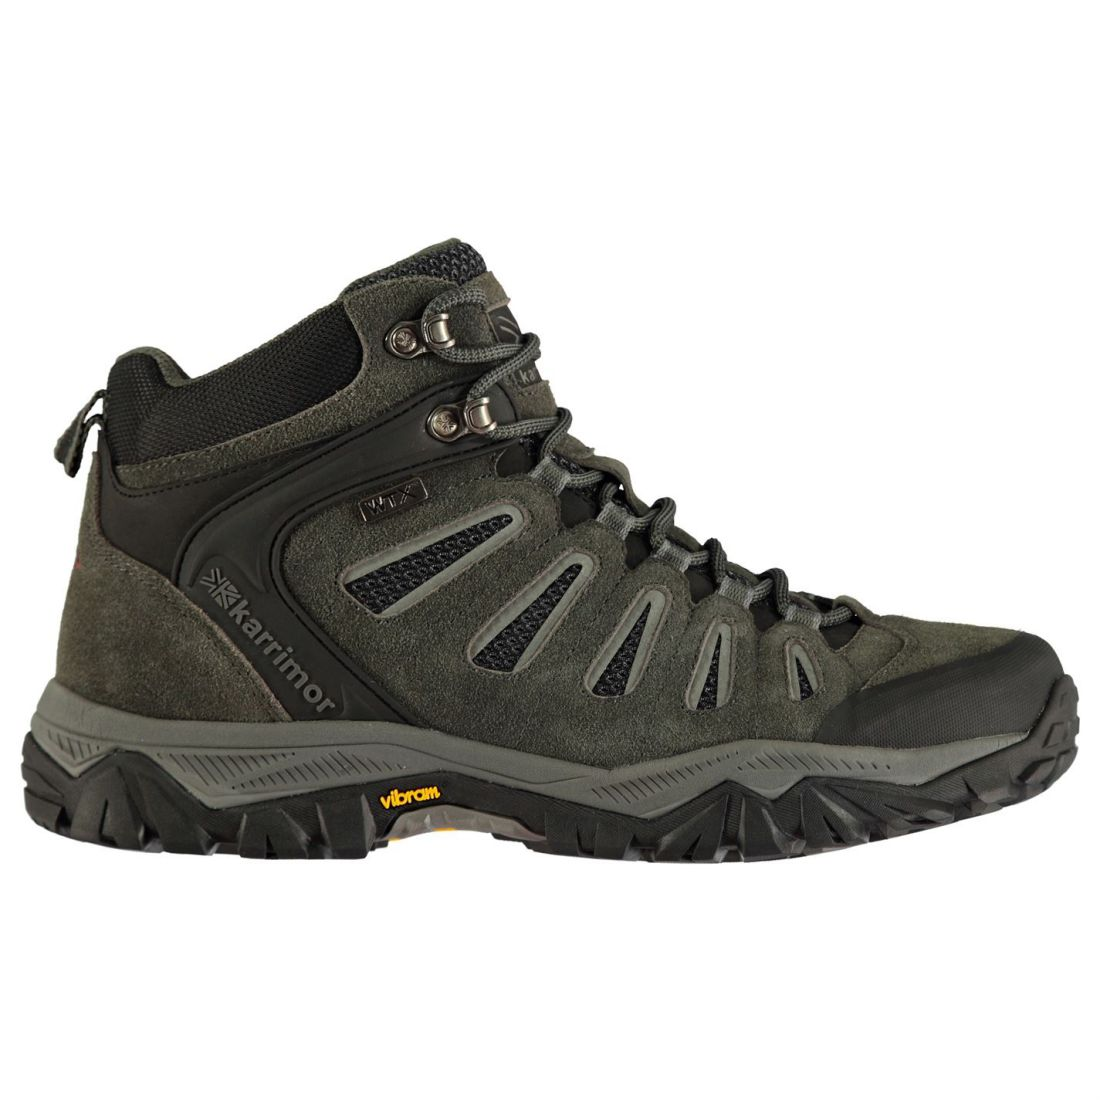 Karrimor Mens  Wildcat Mid Walking Boots Lace Up Breathable Padded Ankle Collar  store sale outlet